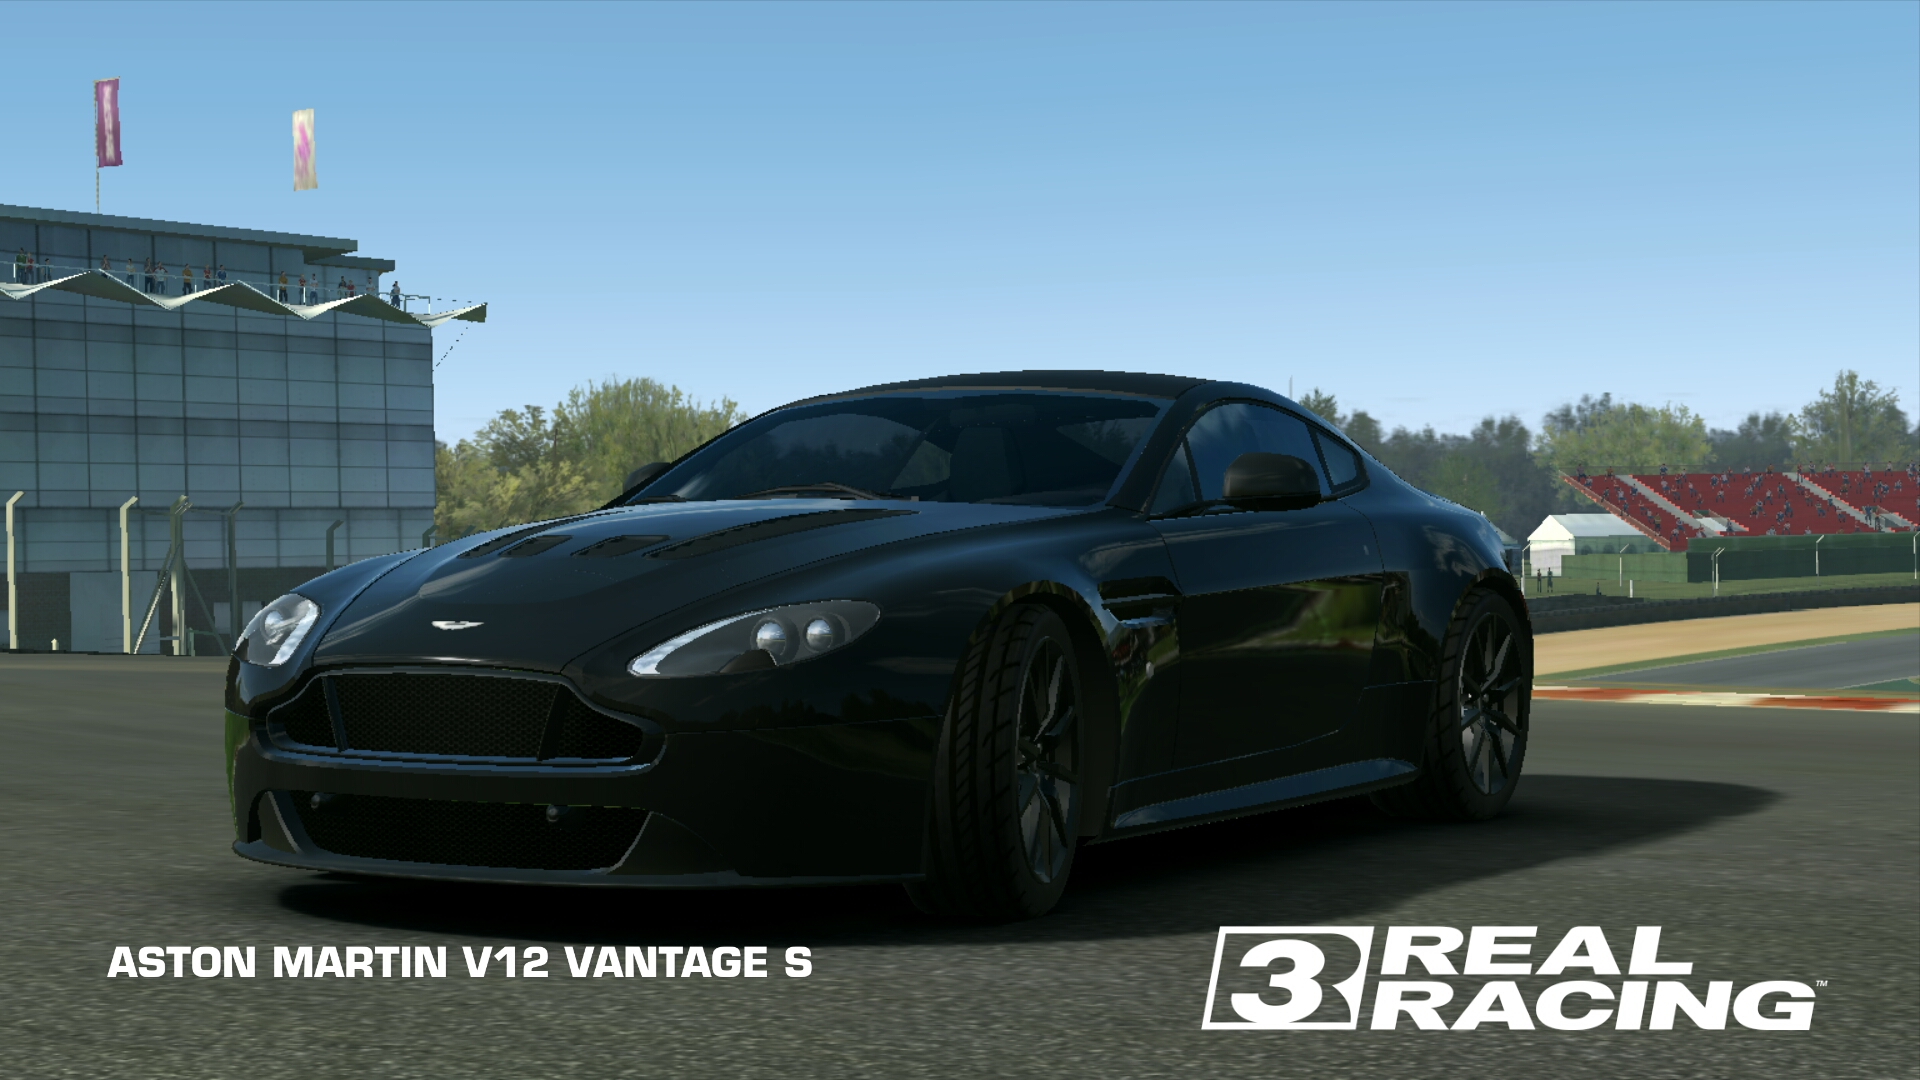 ASTON MARTIN V VANTAGE S Real Racing Wiki FANDOM Powered By - Aston martin vantage v12